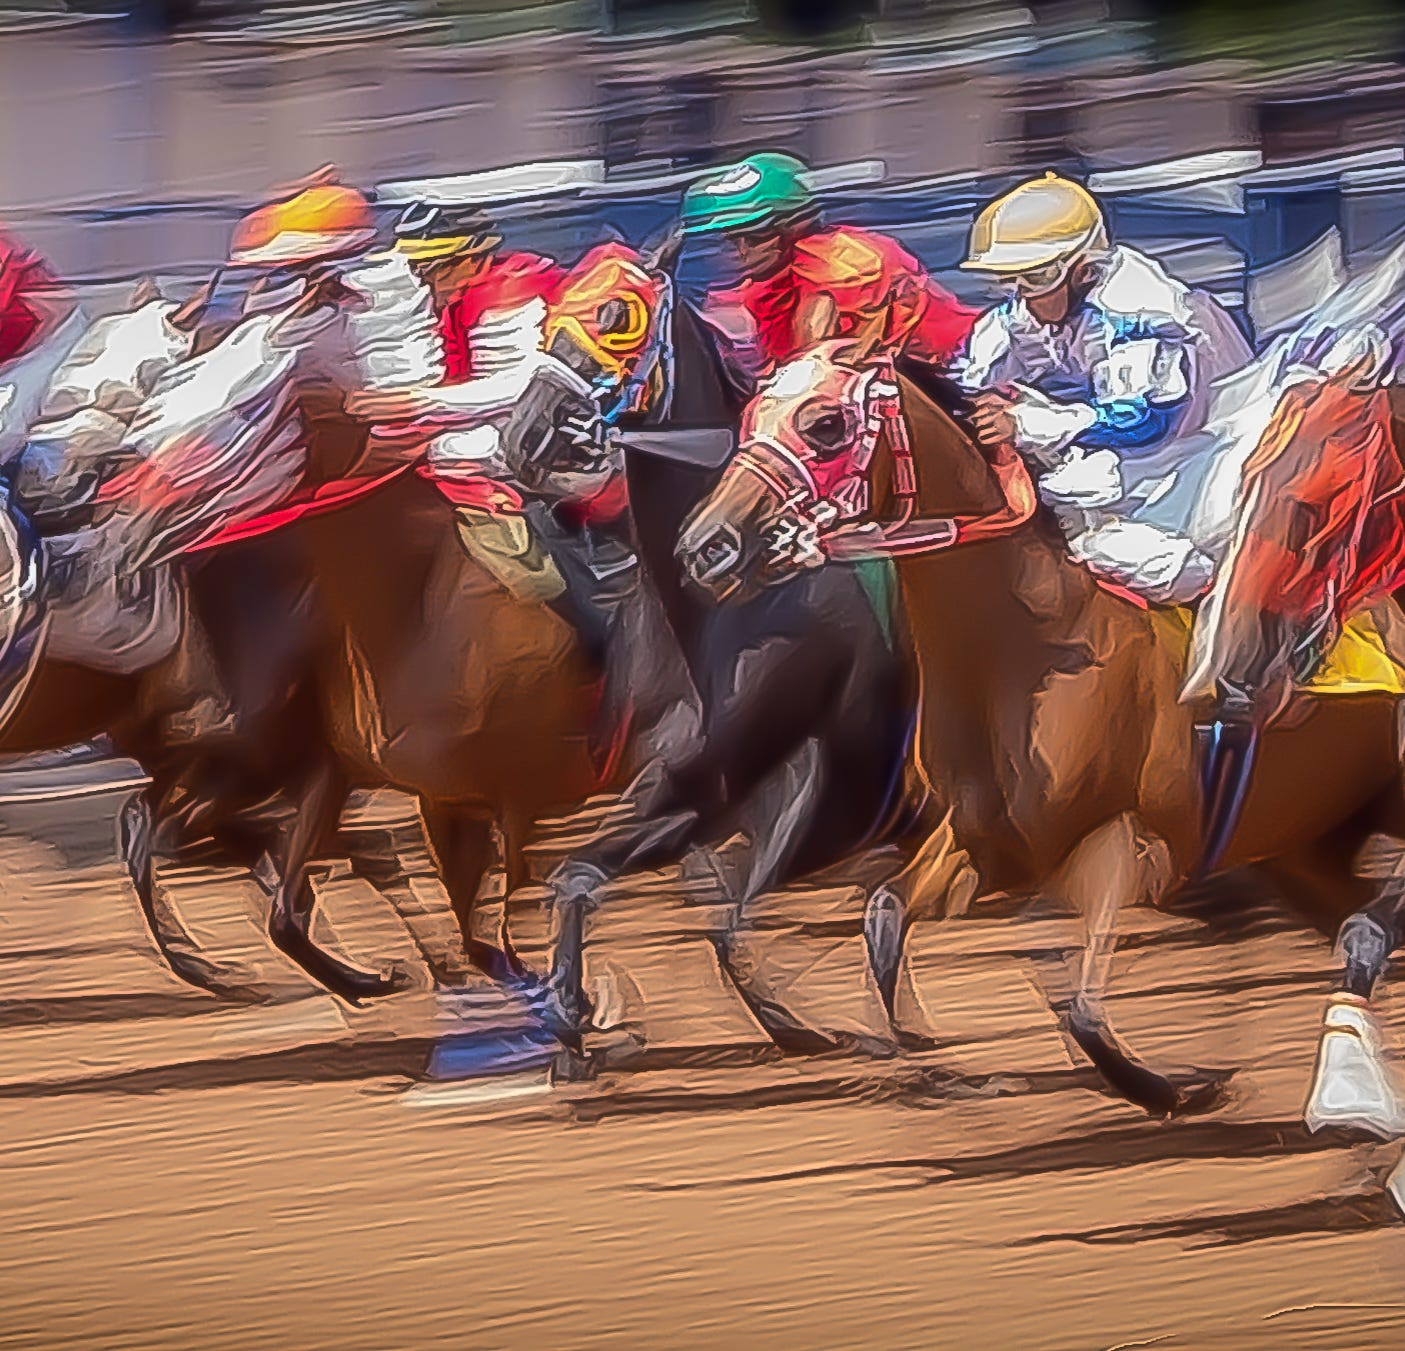 Ruidoso Downs Race Track: Get the 2019 stakes schedule